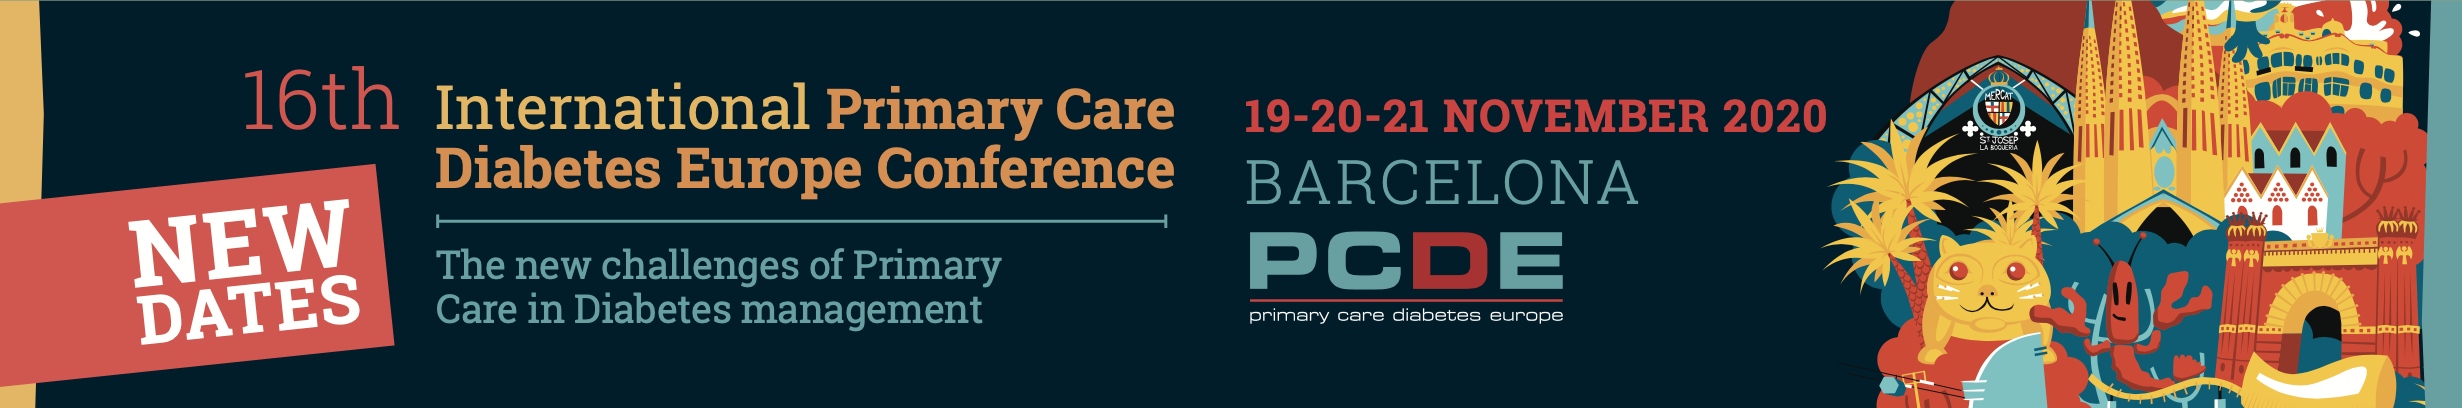 CANCELLED - 16th International Primary Care Diabetes Europe Conference